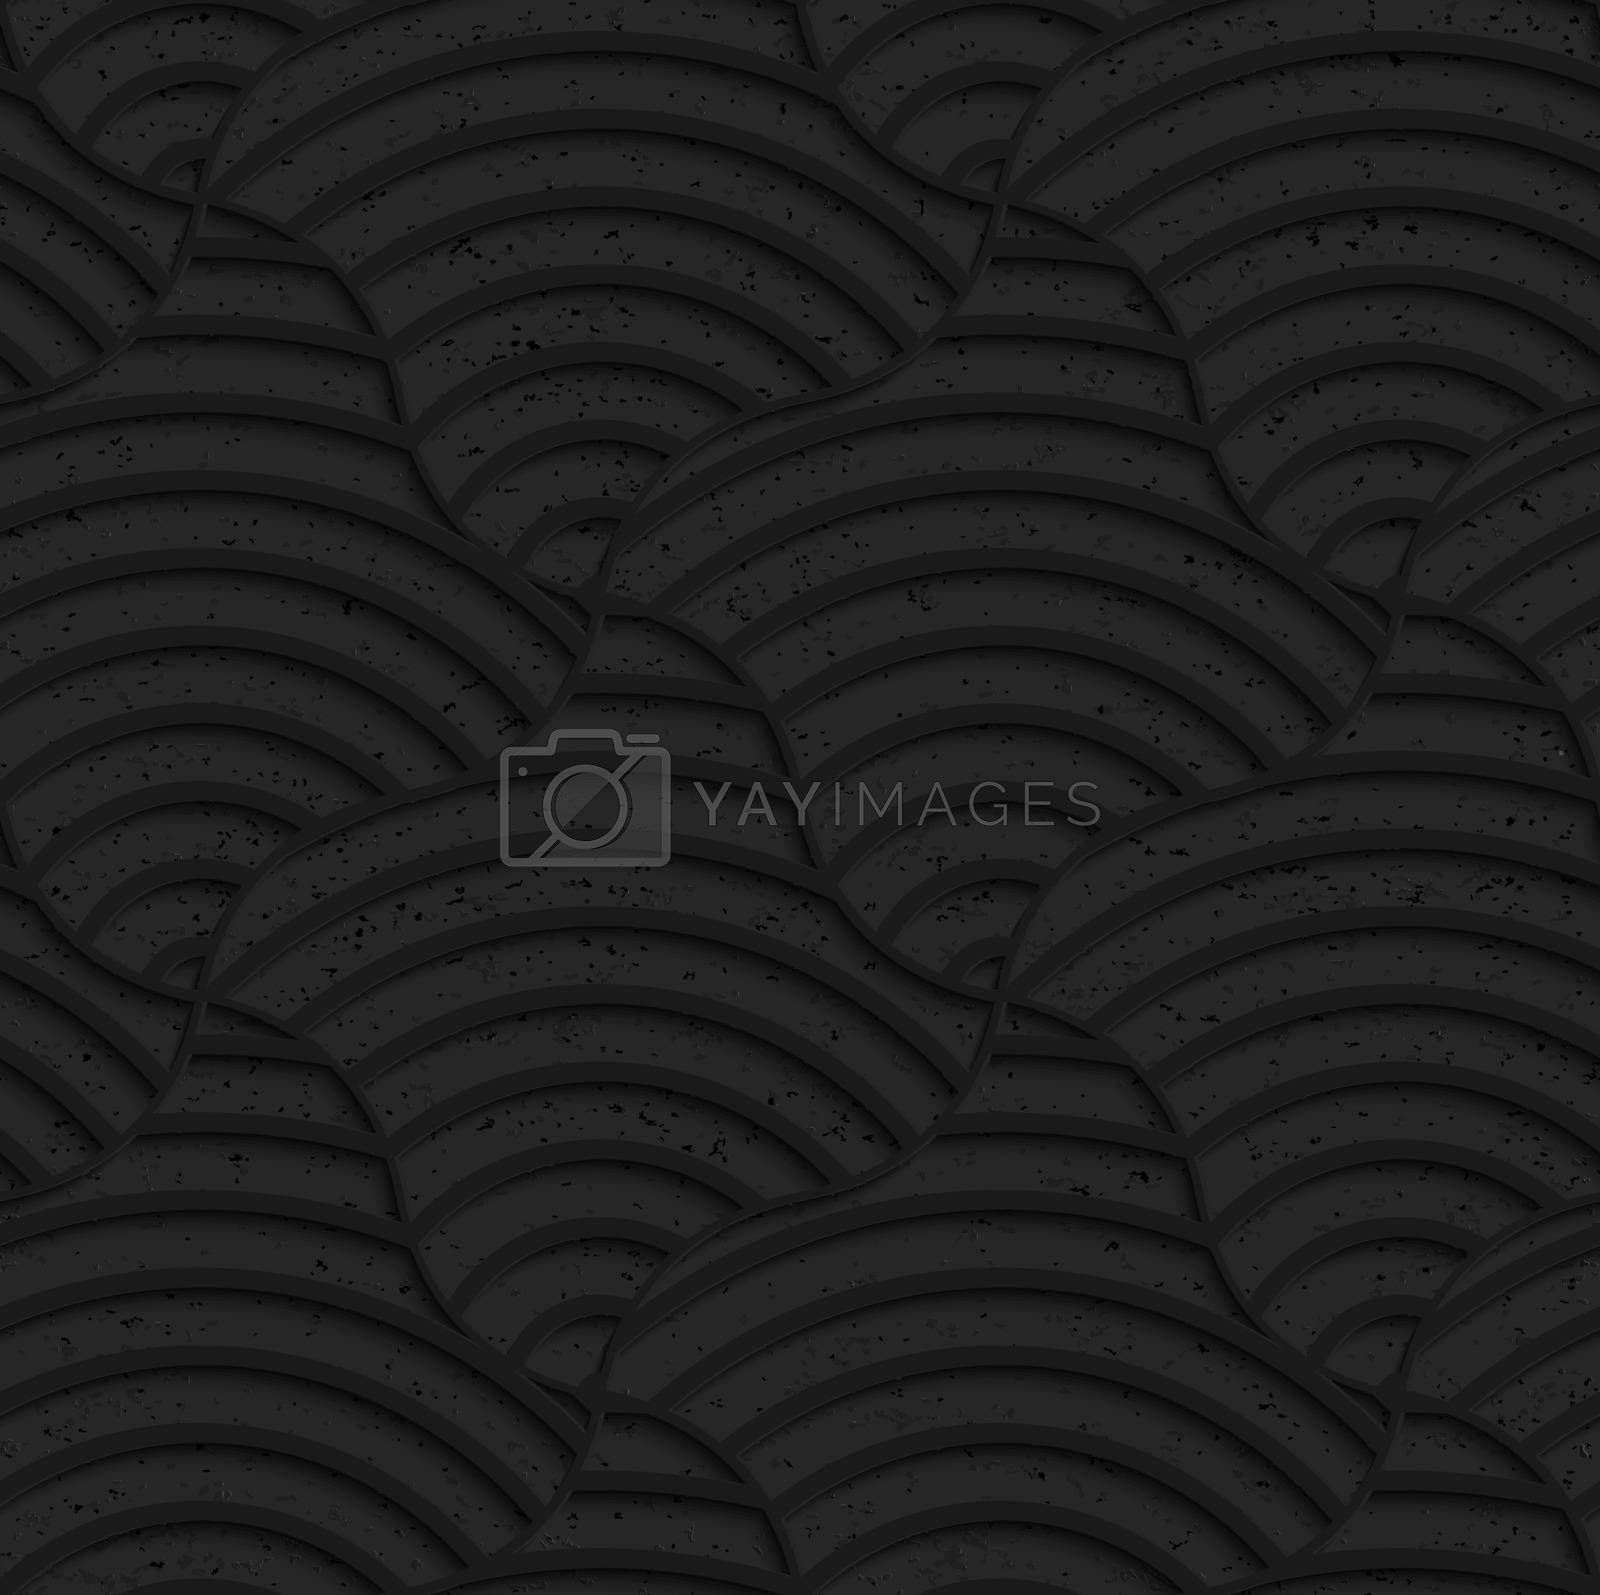 Seamless geometric background. Pattern with 3D texture and realistic shadow.Textured black plastic striped pillows.